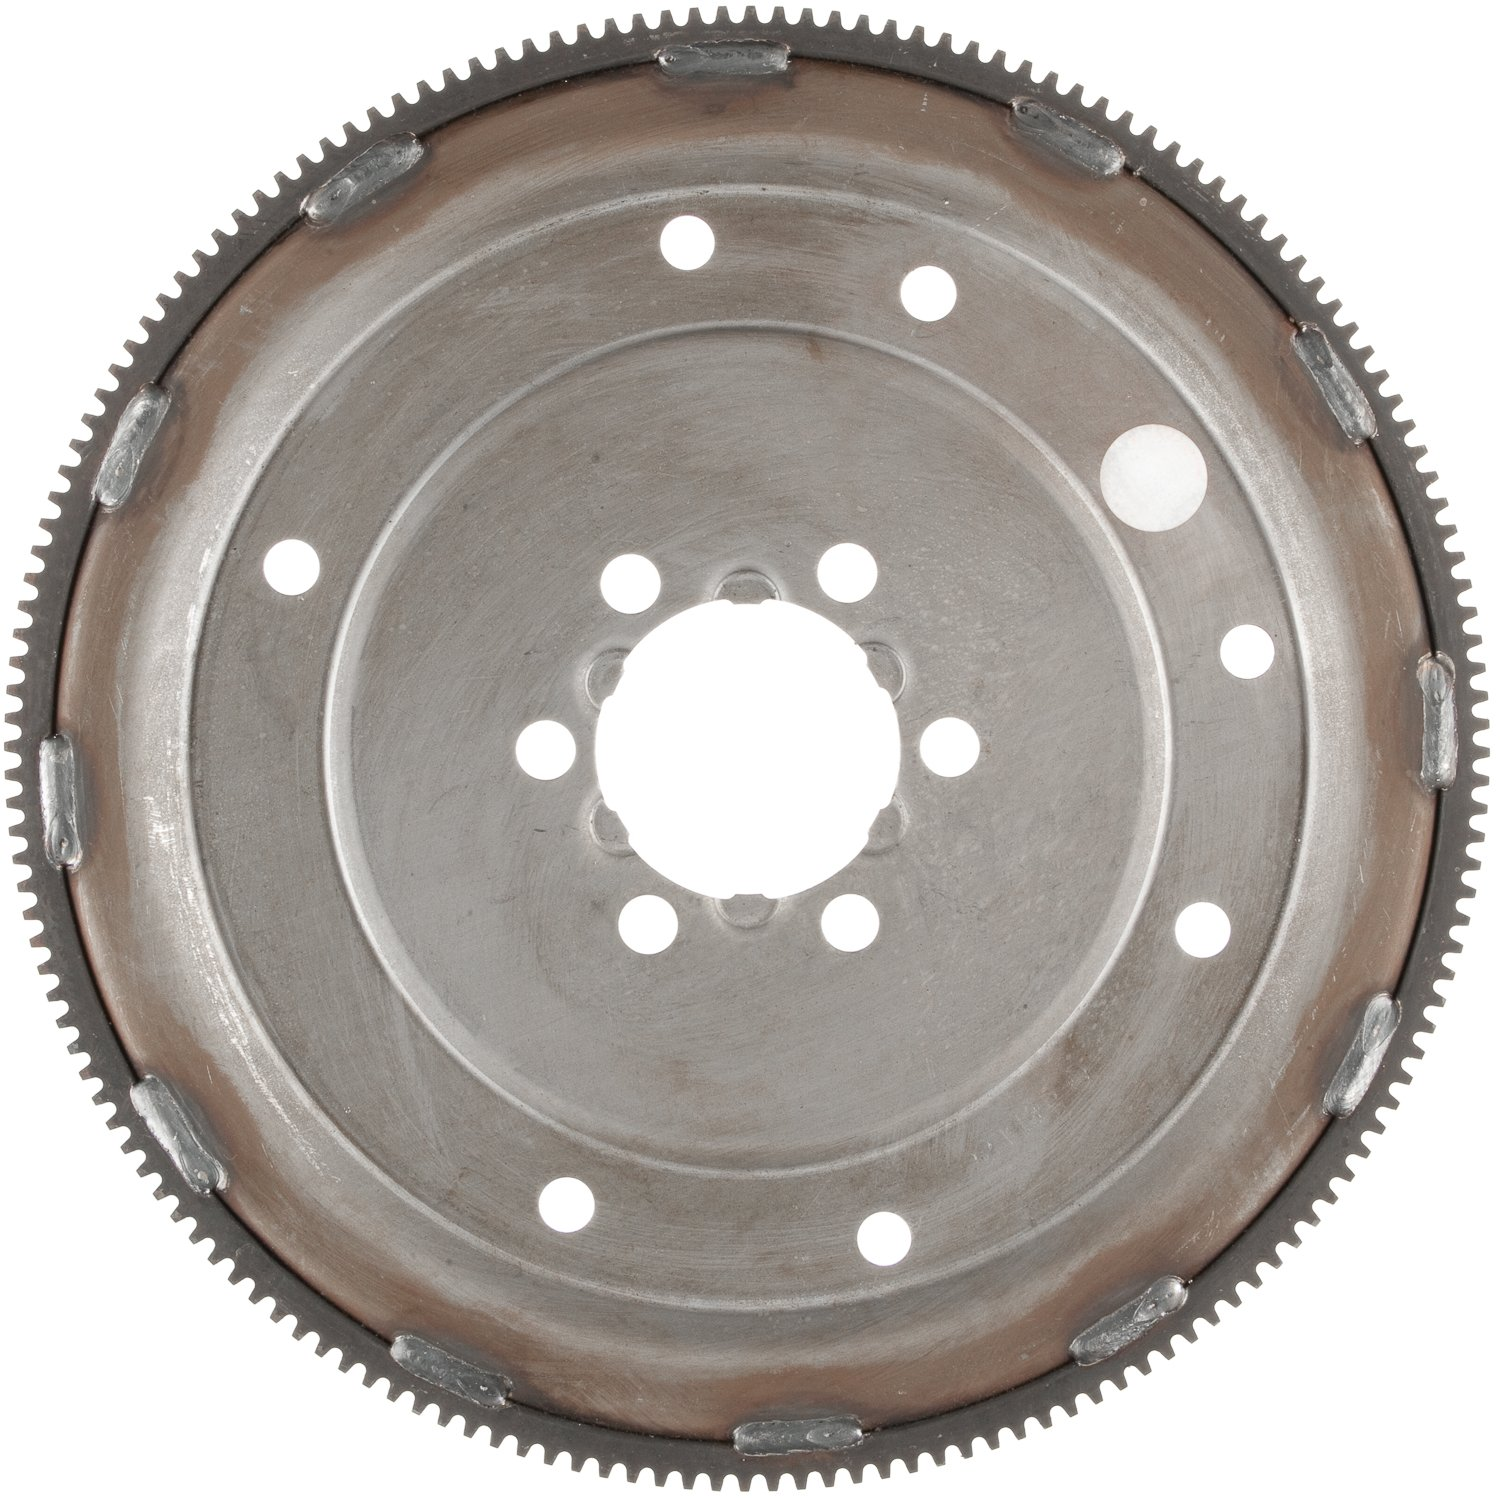 ATP Z-337 Automatic Transmission Flywheel Flex-Plate